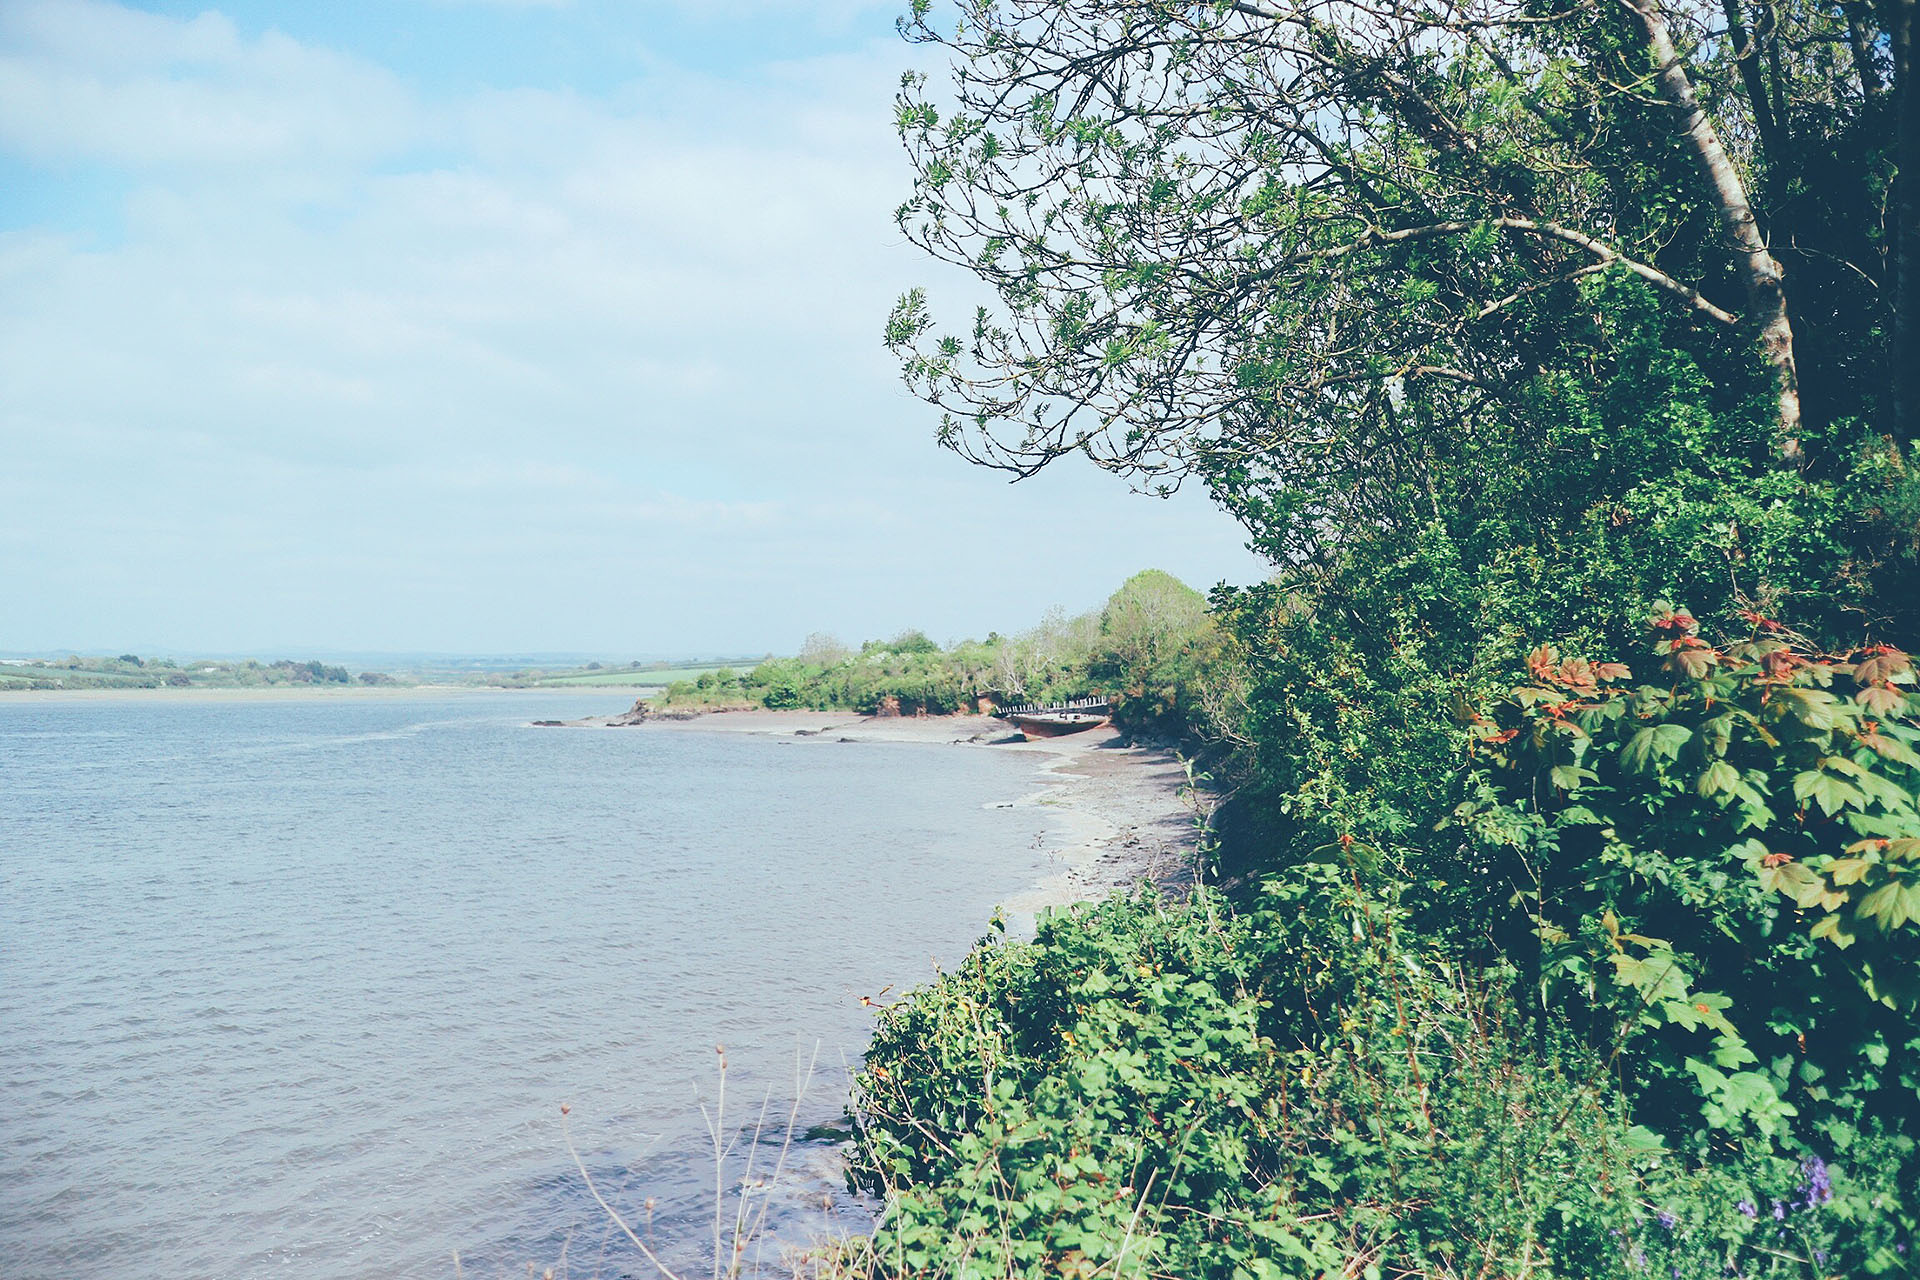 Life this week - giggles, cycle rides and blogging